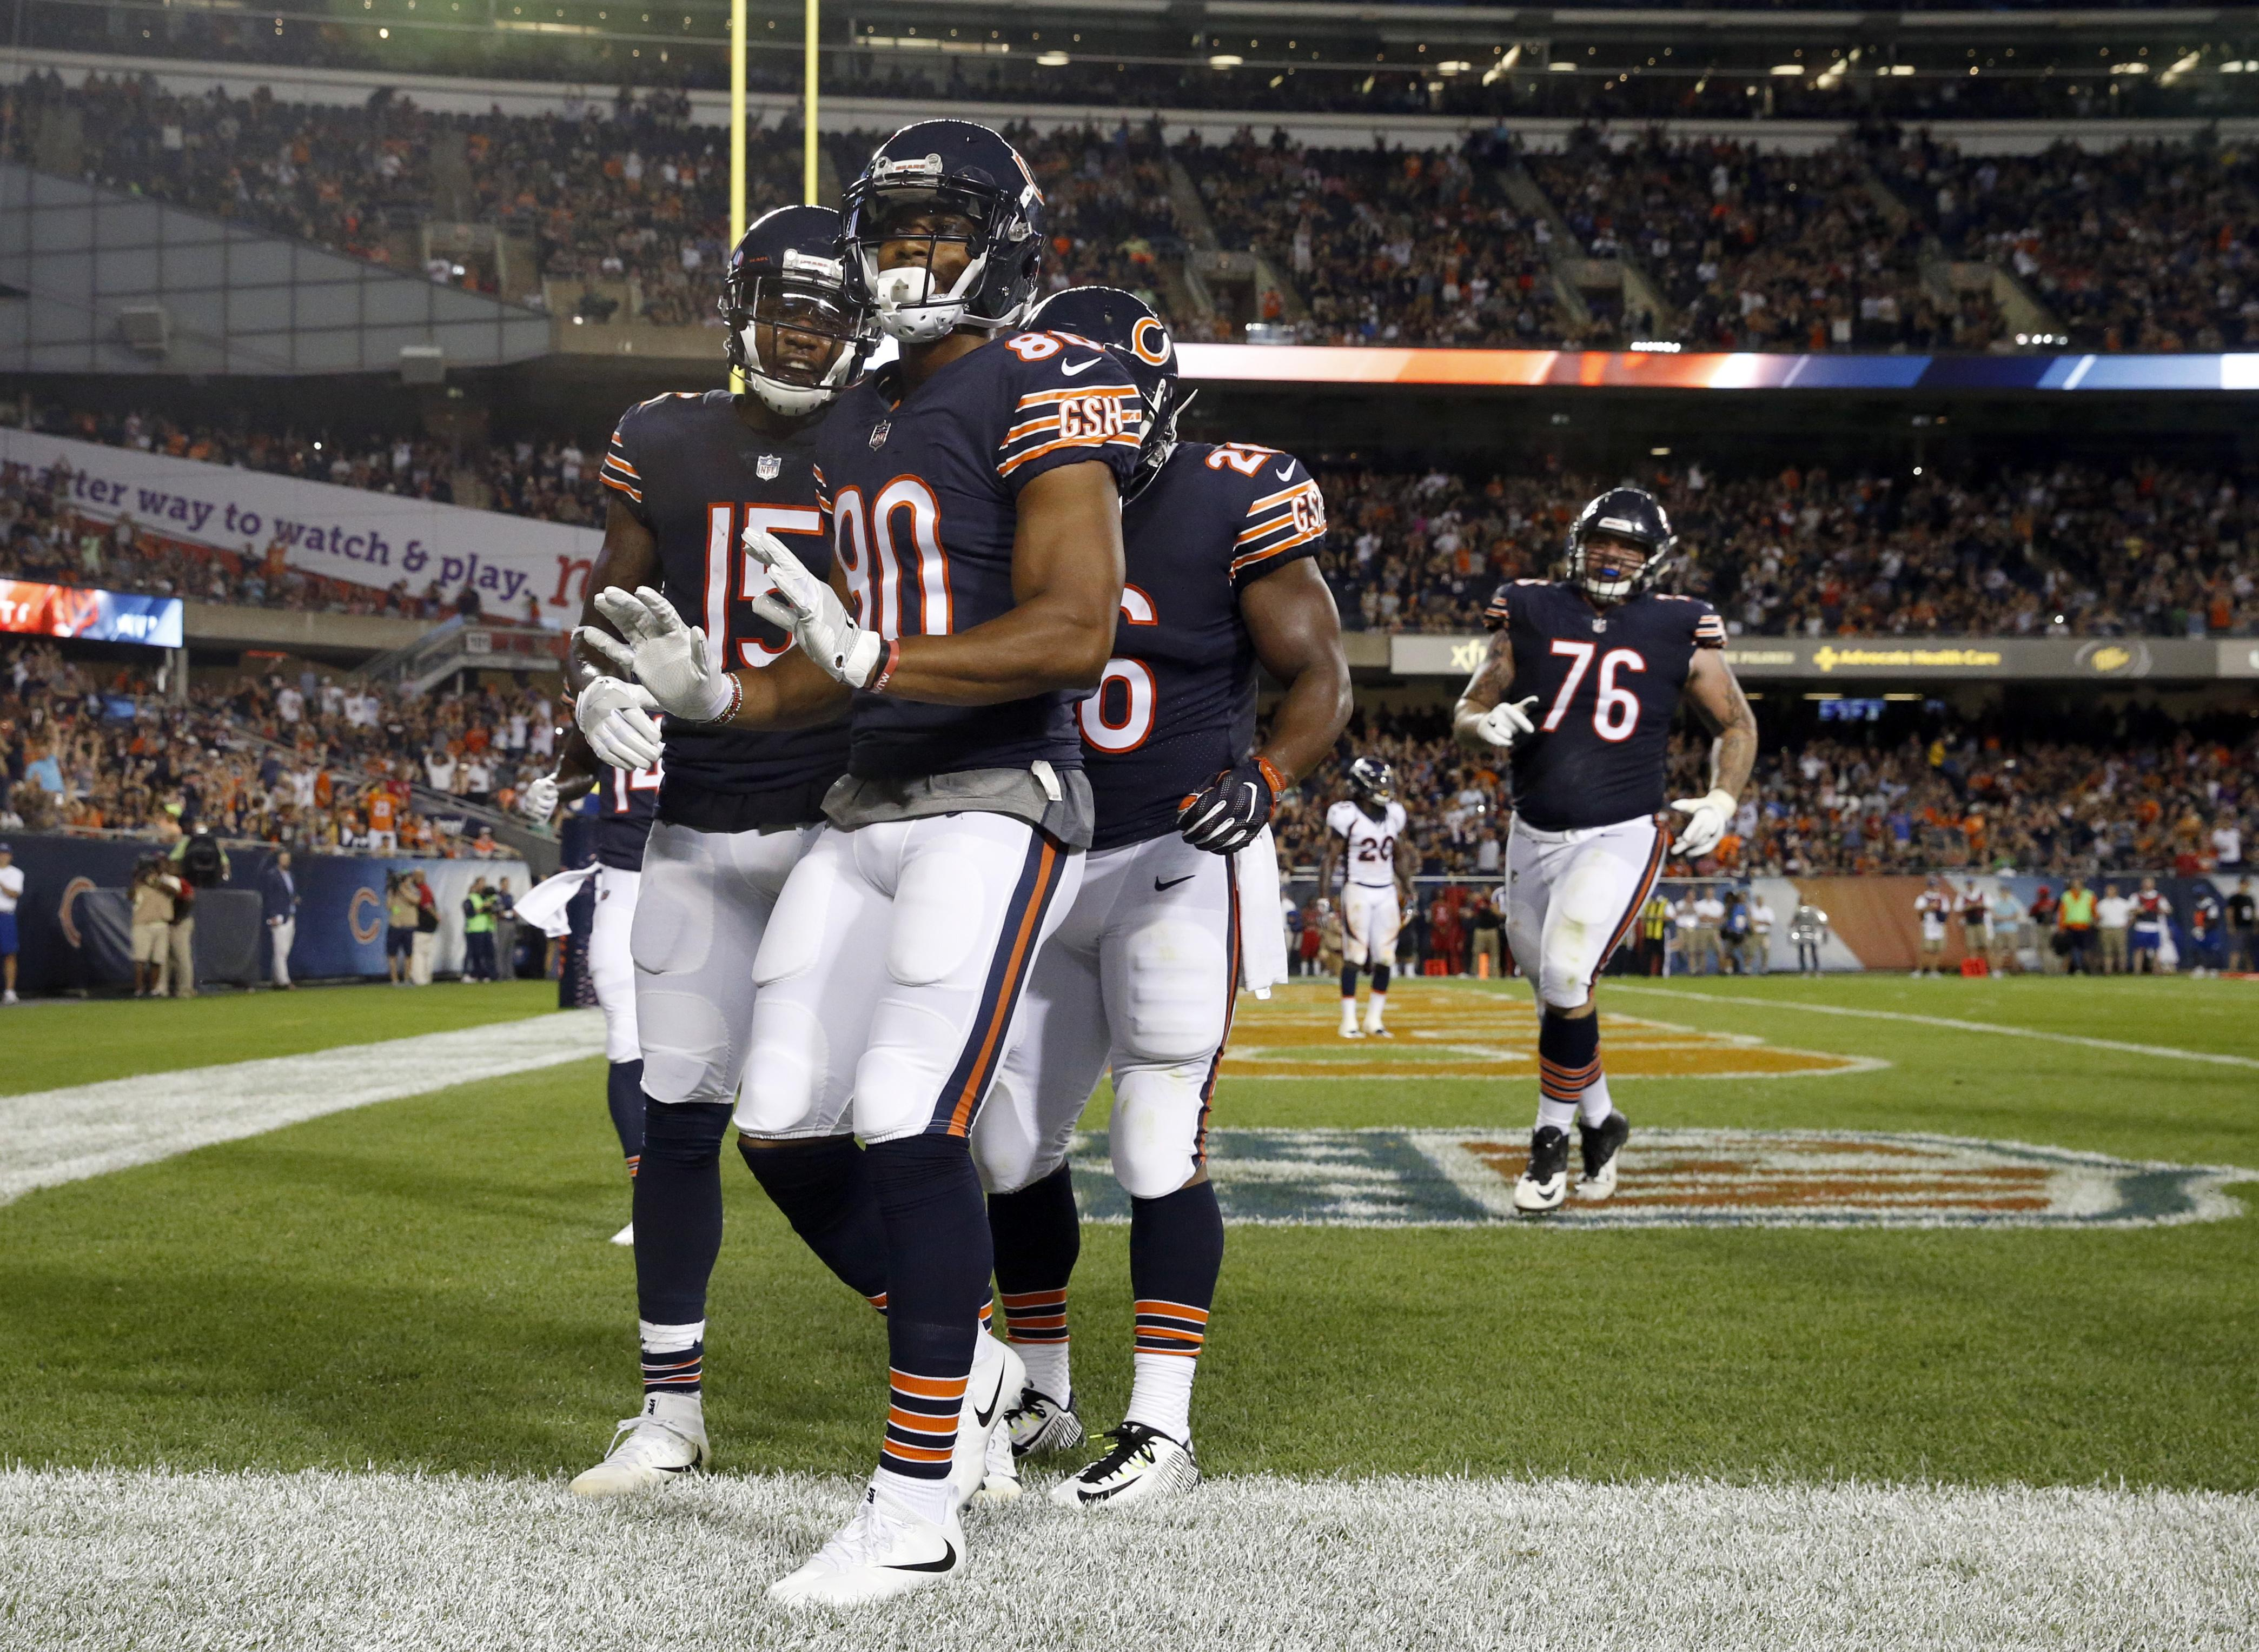 2c31e027c02 Wide receiver Victor Cruz (80), celebrating a touchdown with his teammates  during an